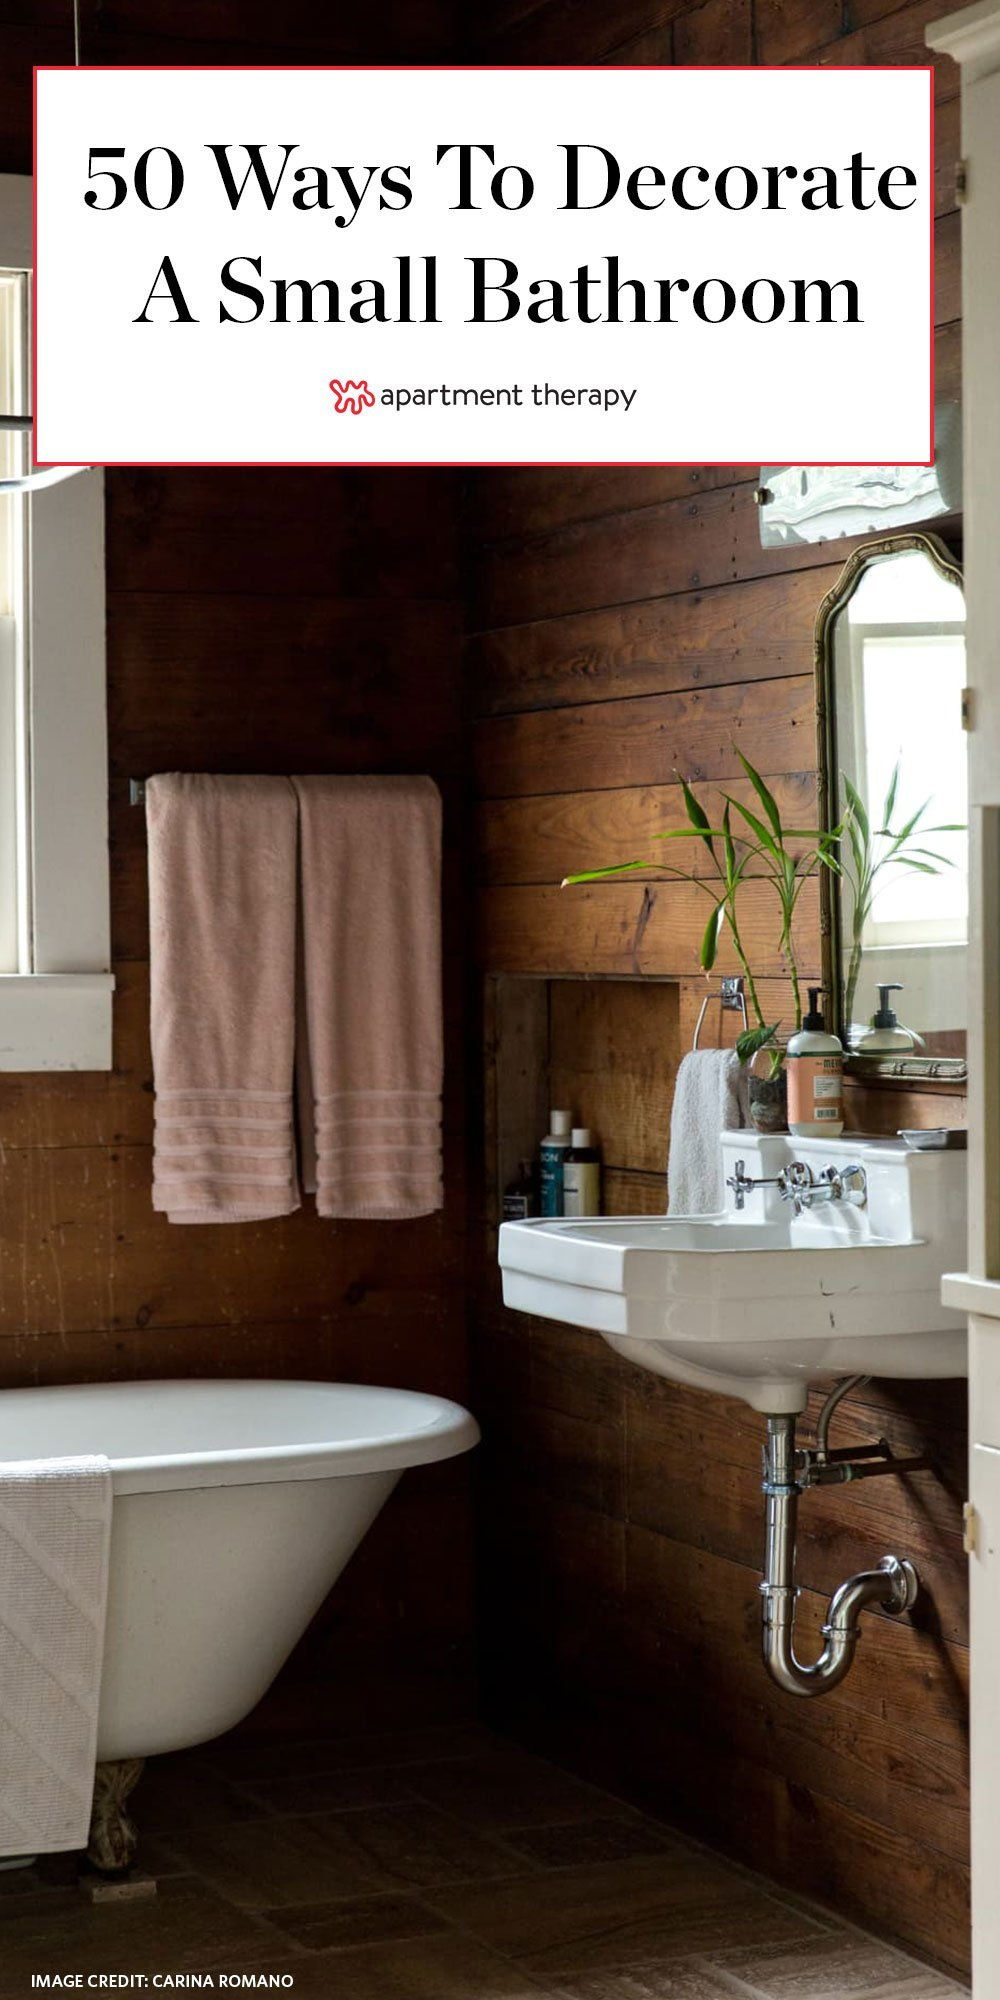 Fifty Genius Small Bathroom Decorating And Layout Ideas Design Tricks And More To Make The Most Of Even Th In 2020 Small Bathroom Small Bathroom Decor Bathroom Decor